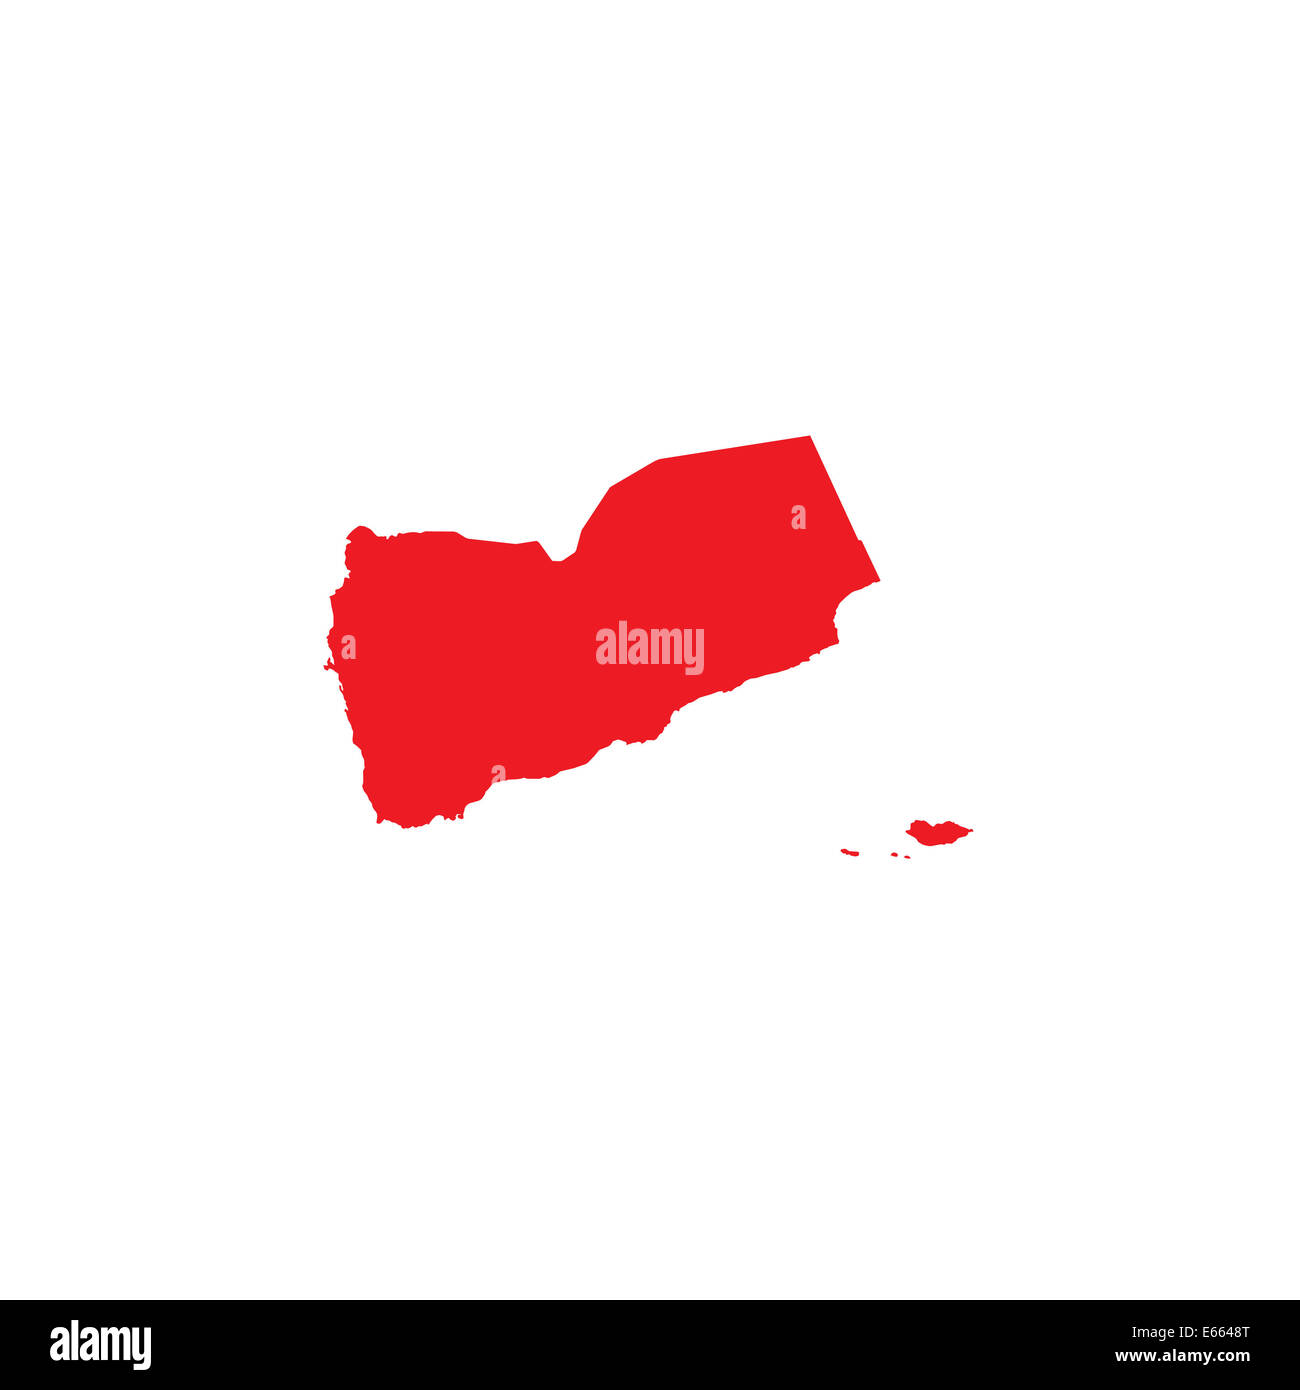 Shape of the Country of Yemen - Stock Image